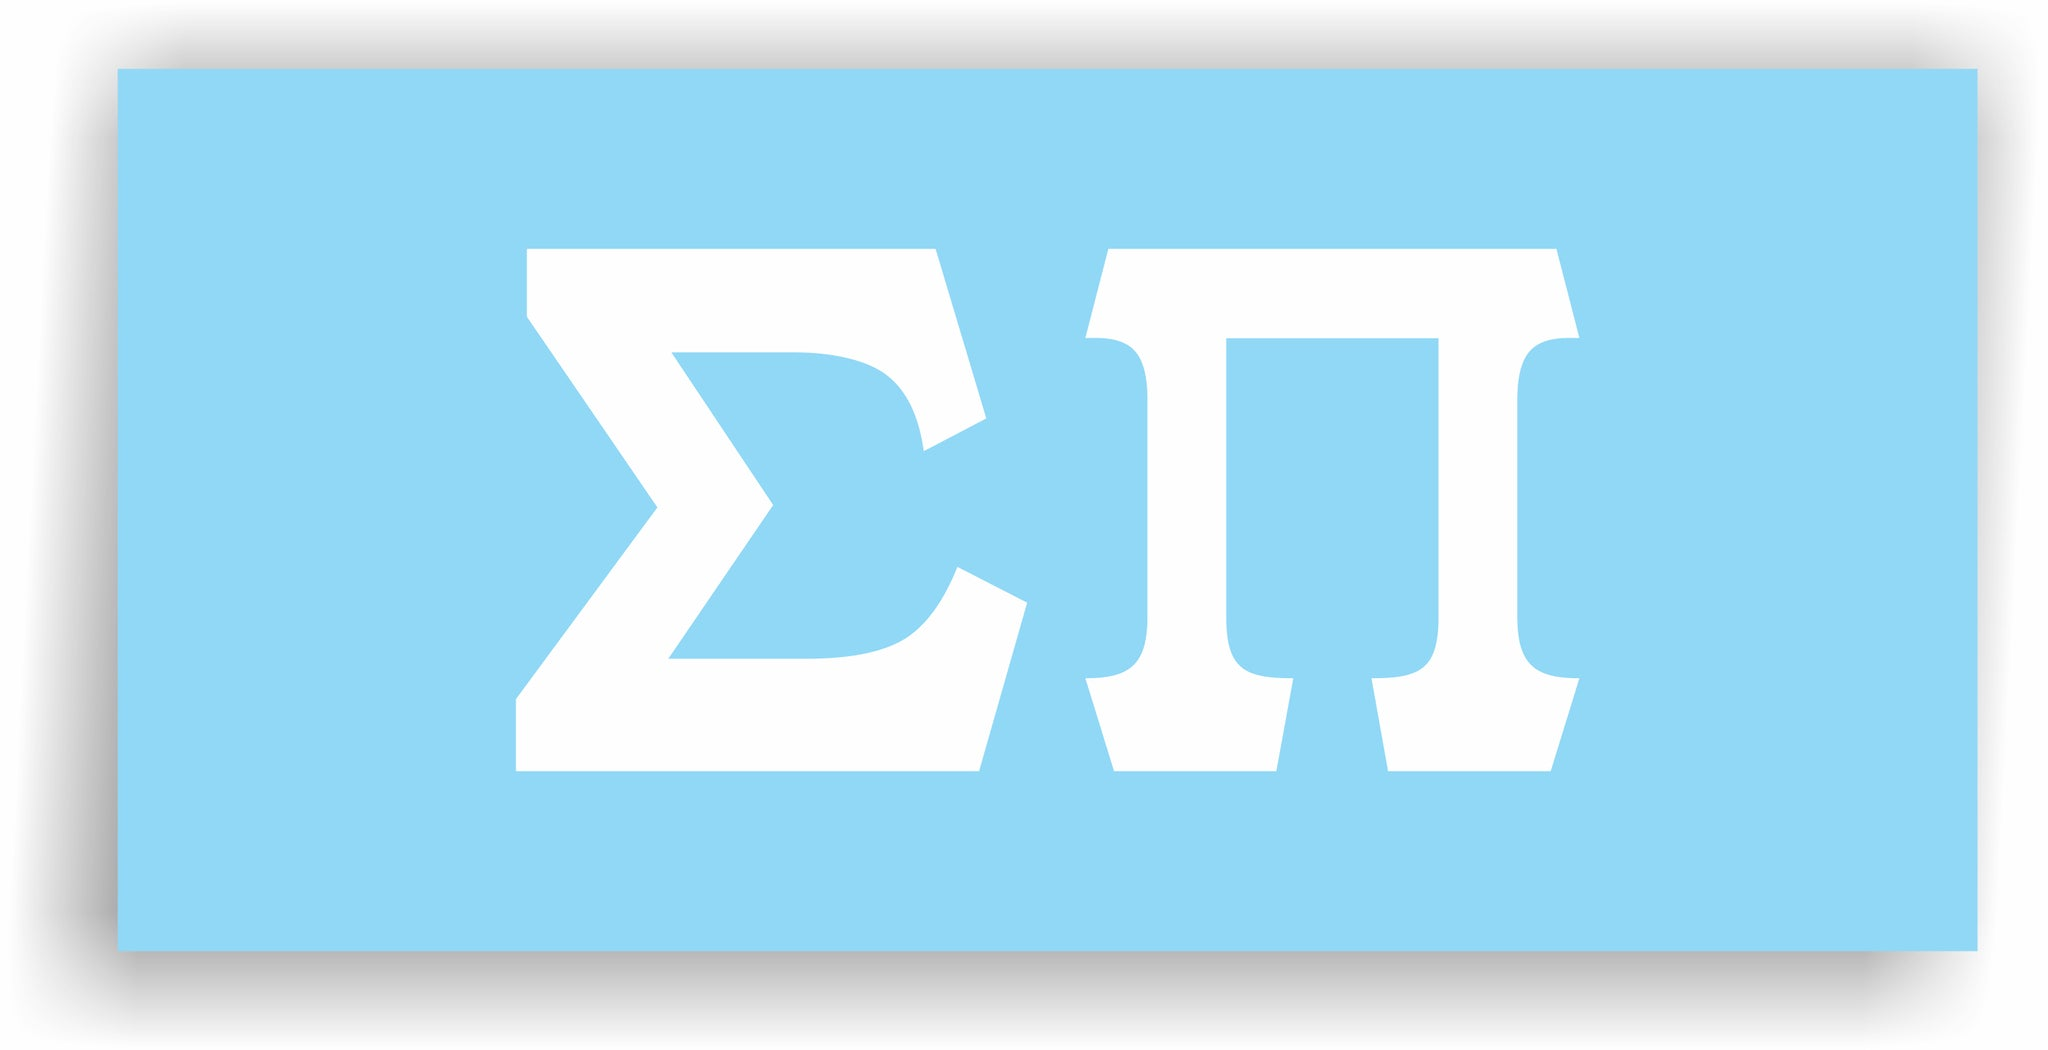 White Tcu Car Decal Sigma Nu Brown Bag Etc